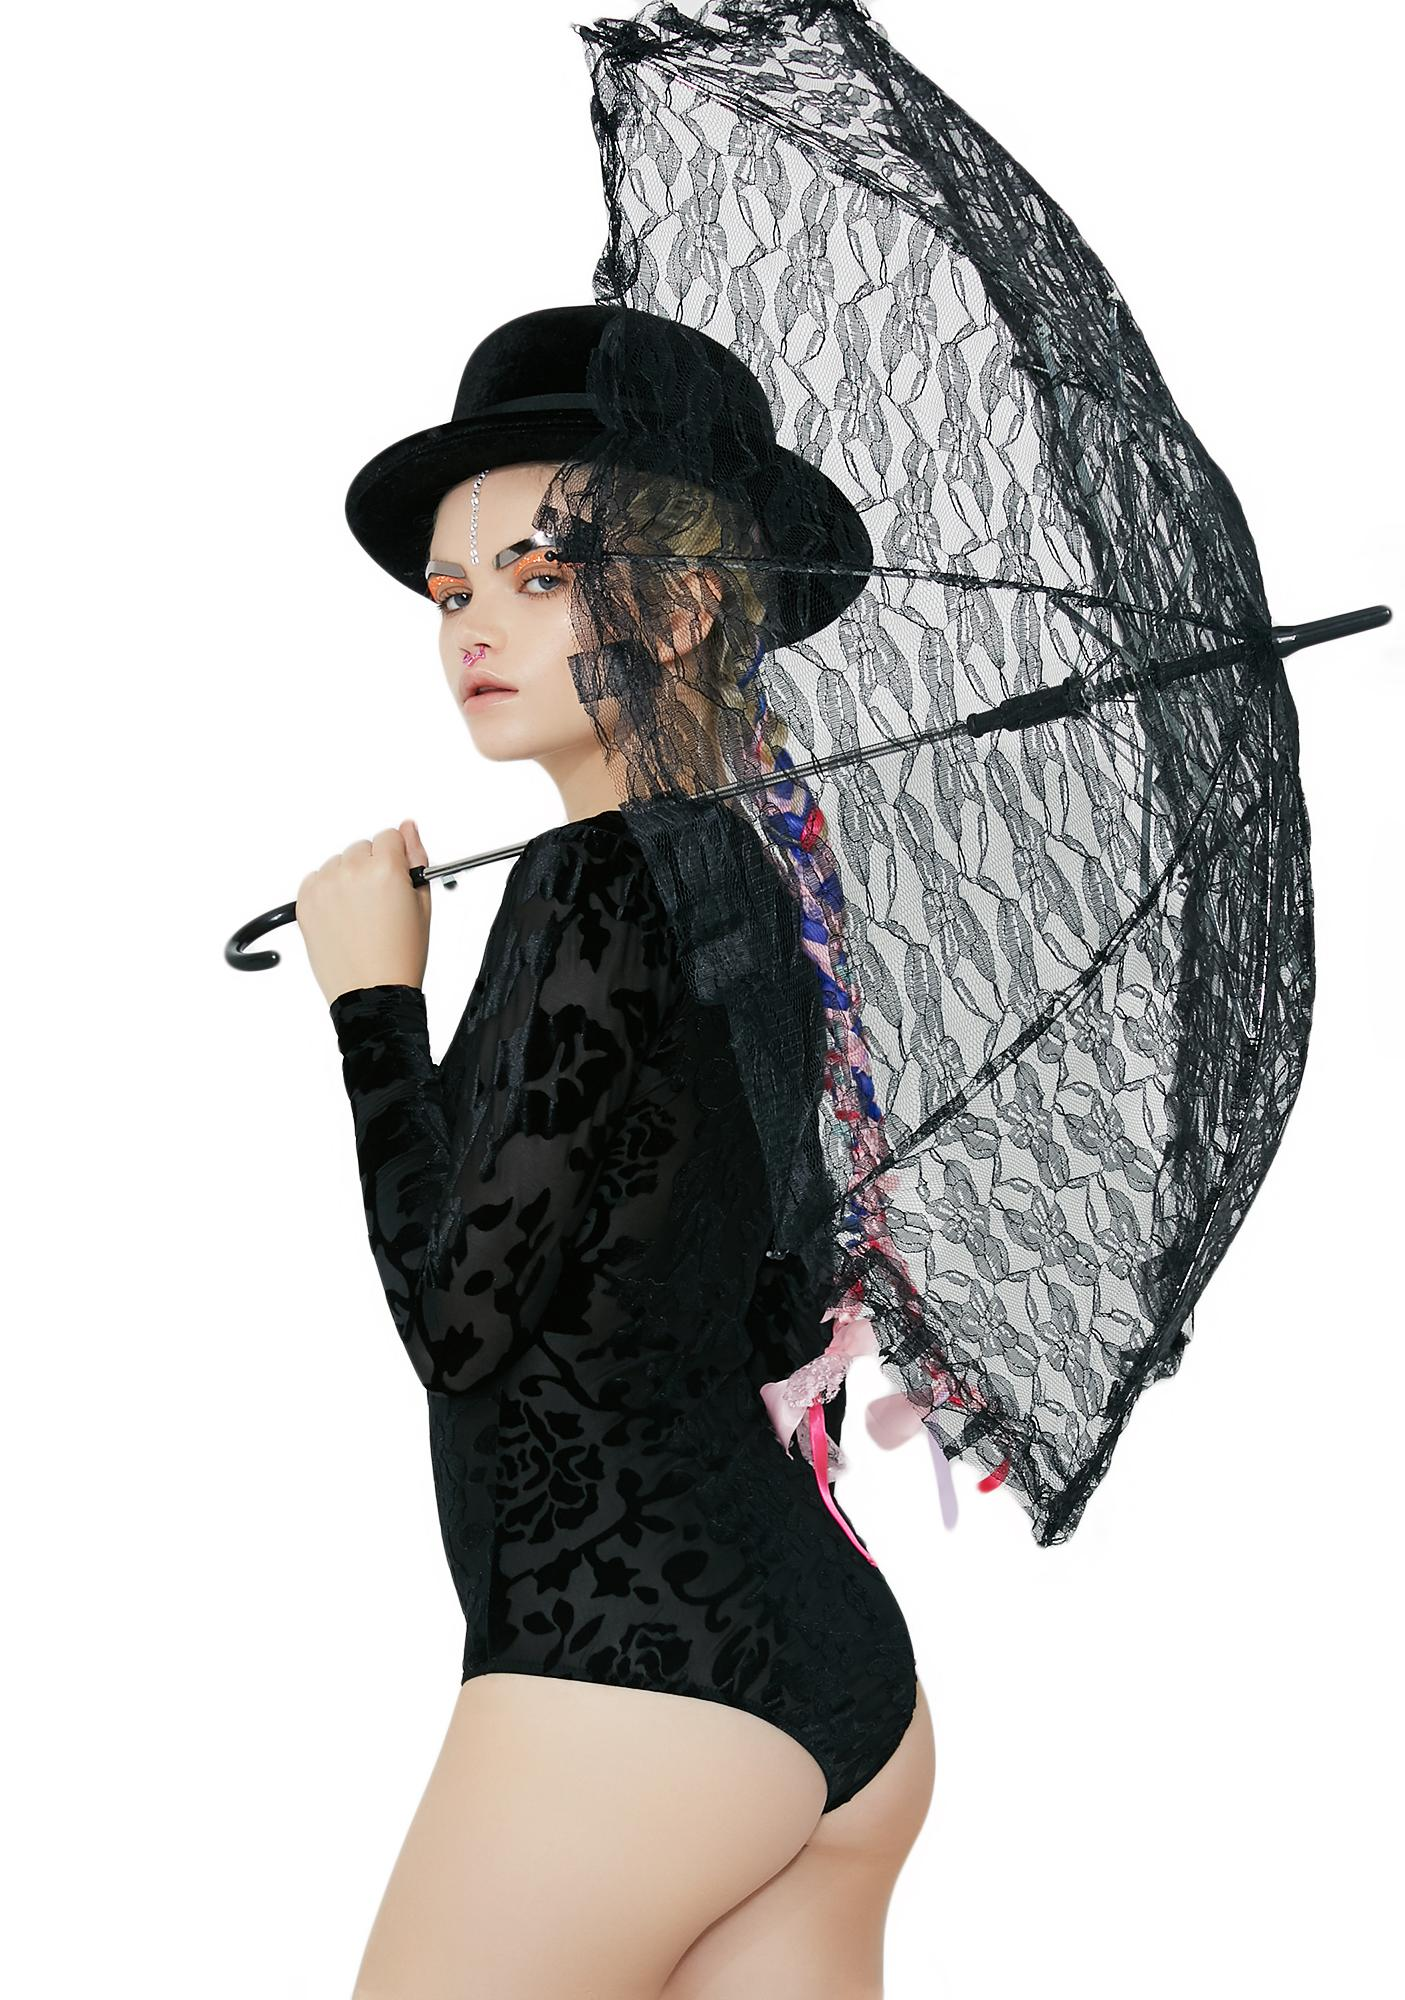 Poppin' Lace Parasol